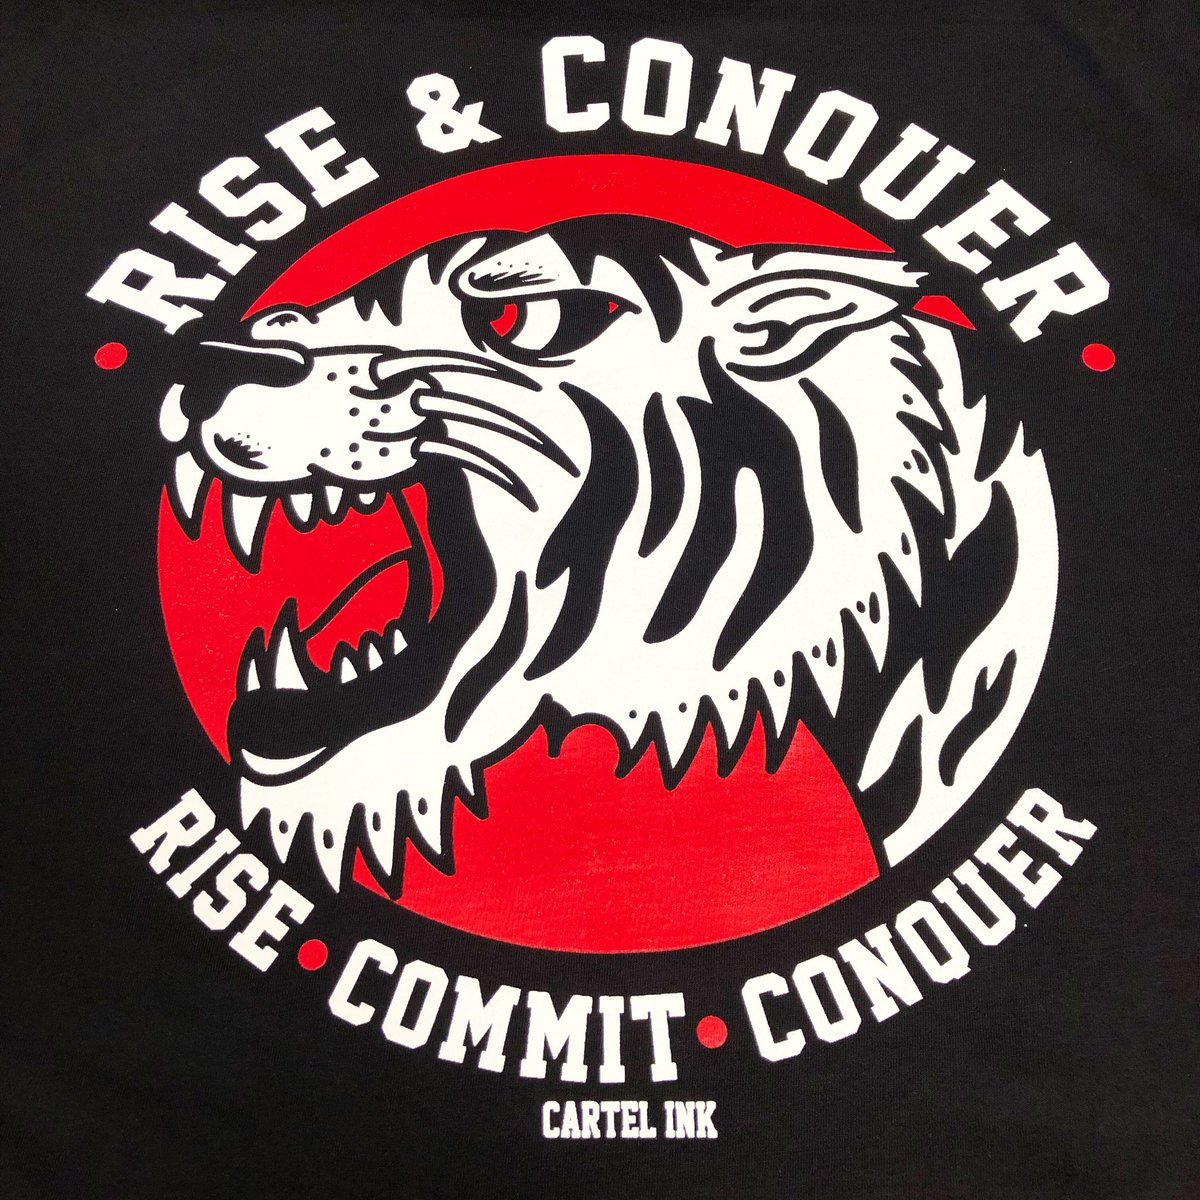 Rise and Conquer 🔥 Currently printing.... #RiseAndConquer https://t.co/1aXRLByhM7